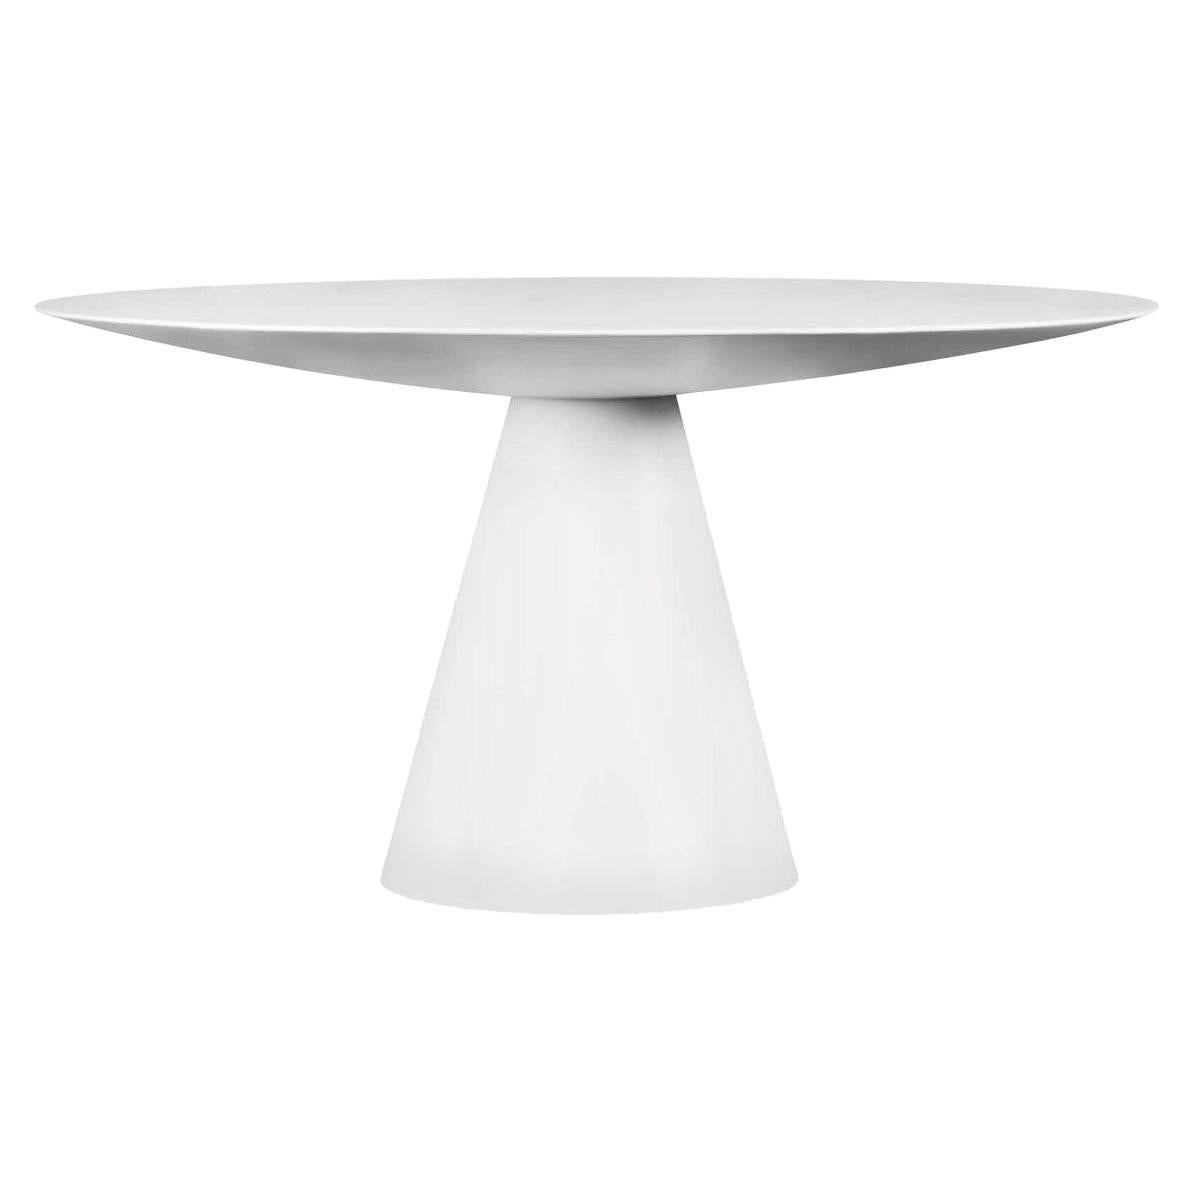 Outdoor Round Dining Table in White Lacquer